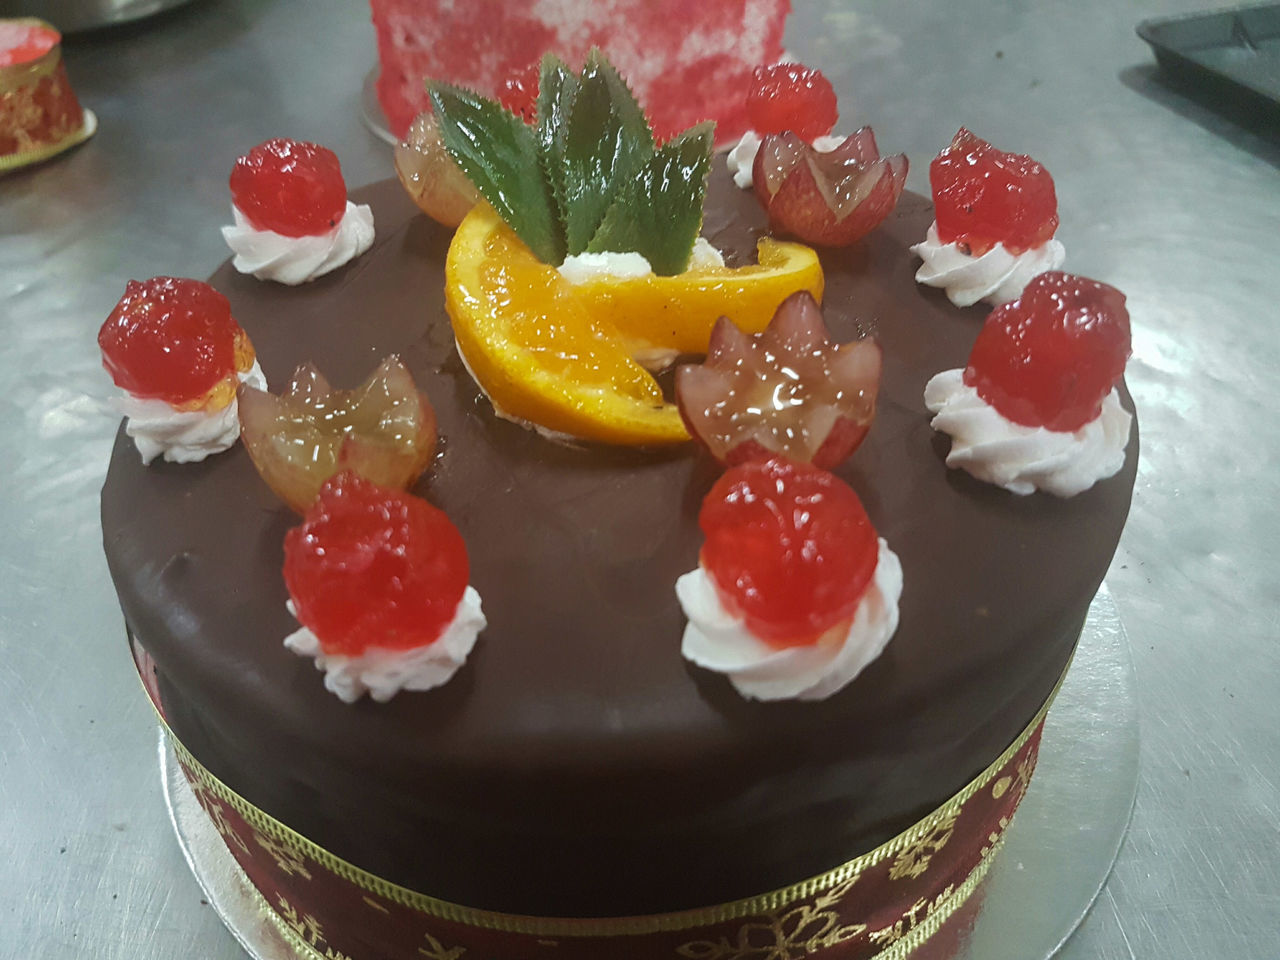 My Year My View Cakes Indulgence Sweet Food Cheflife Pastry Pastrychef